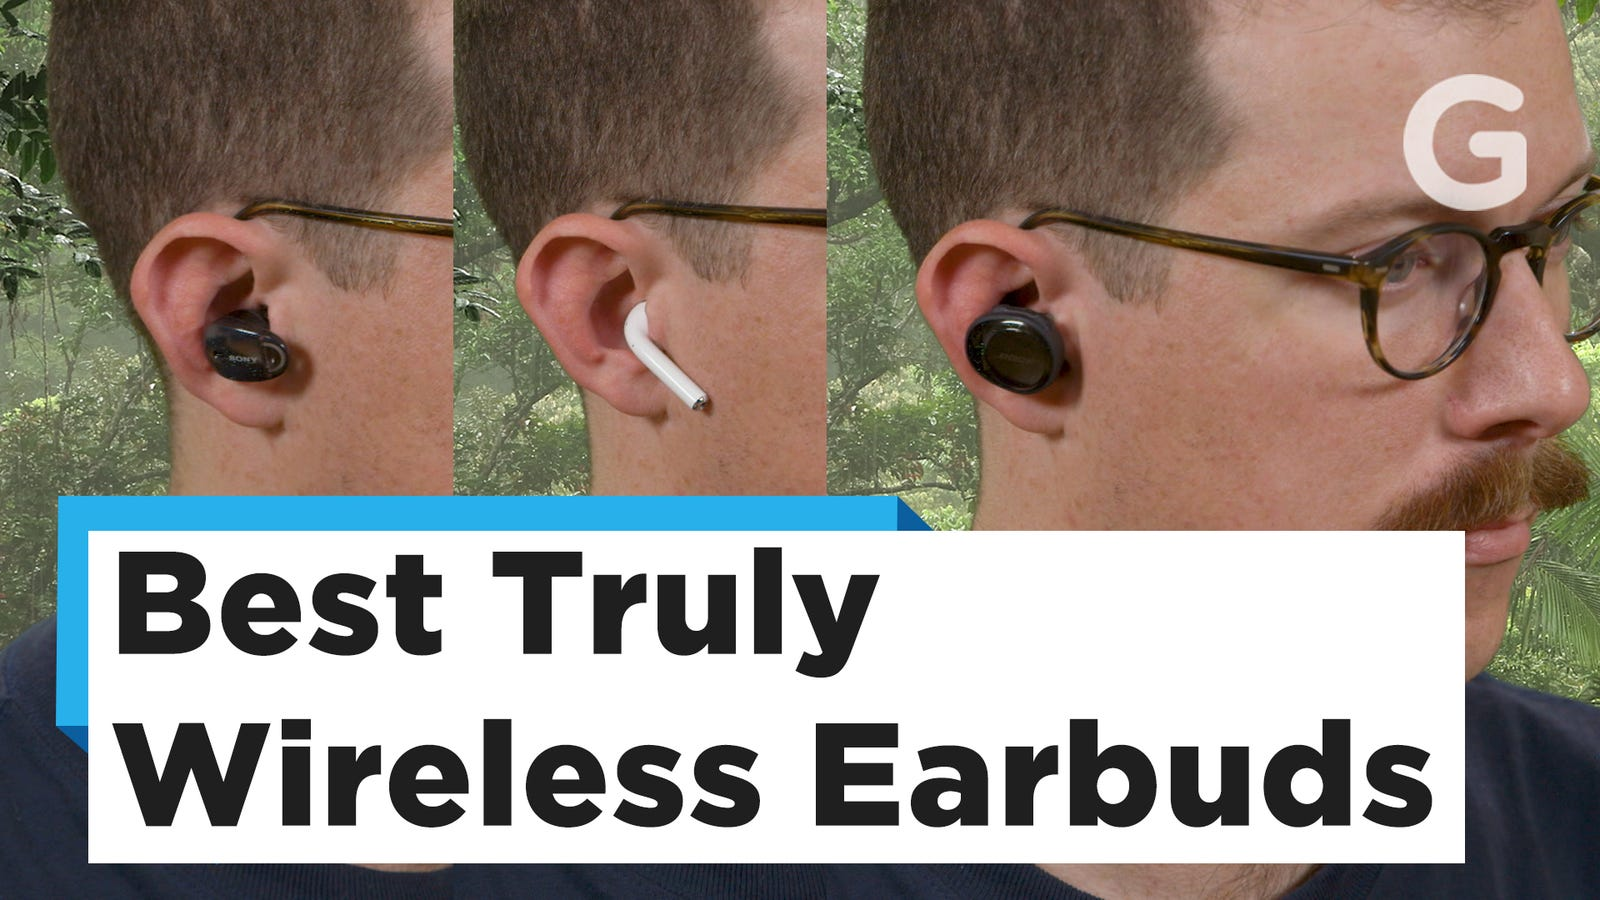 earbuds samsung galaxy note 4 - The Truly Wireless Earbuds You Should Buy Instead of AirPods